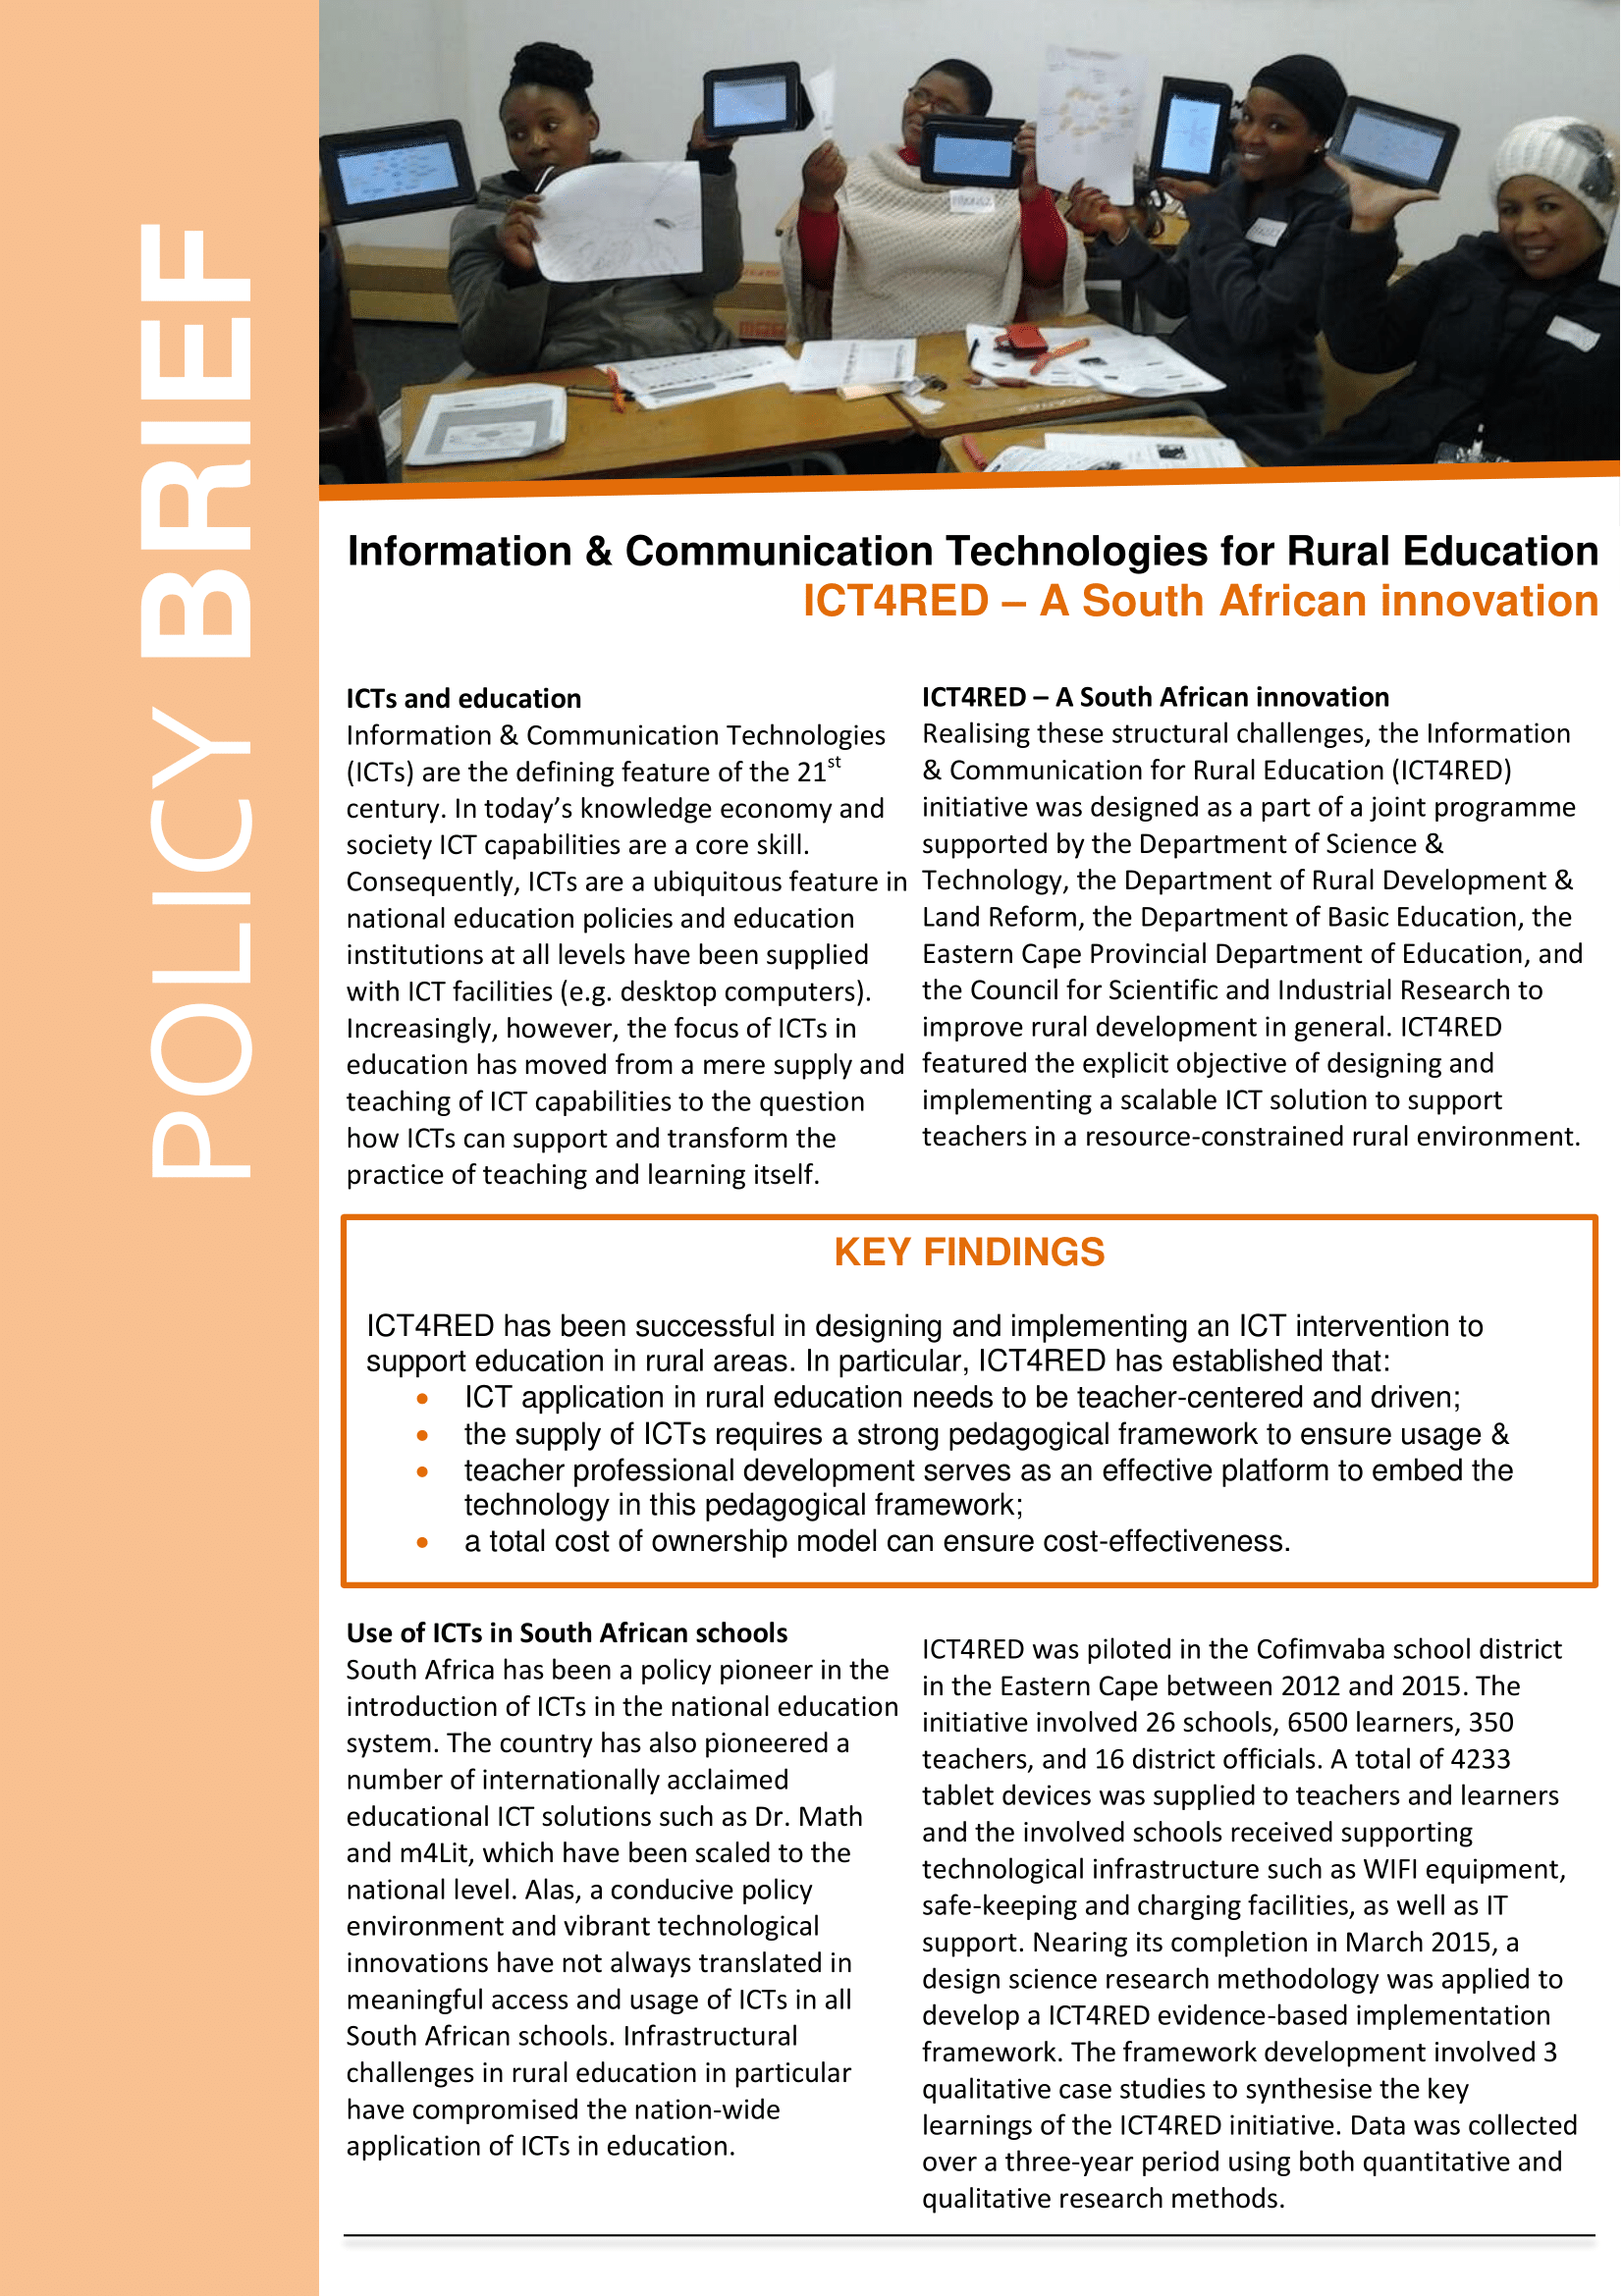 Information and Communication Technologies for Rural Education (ICT4RED) policy brief